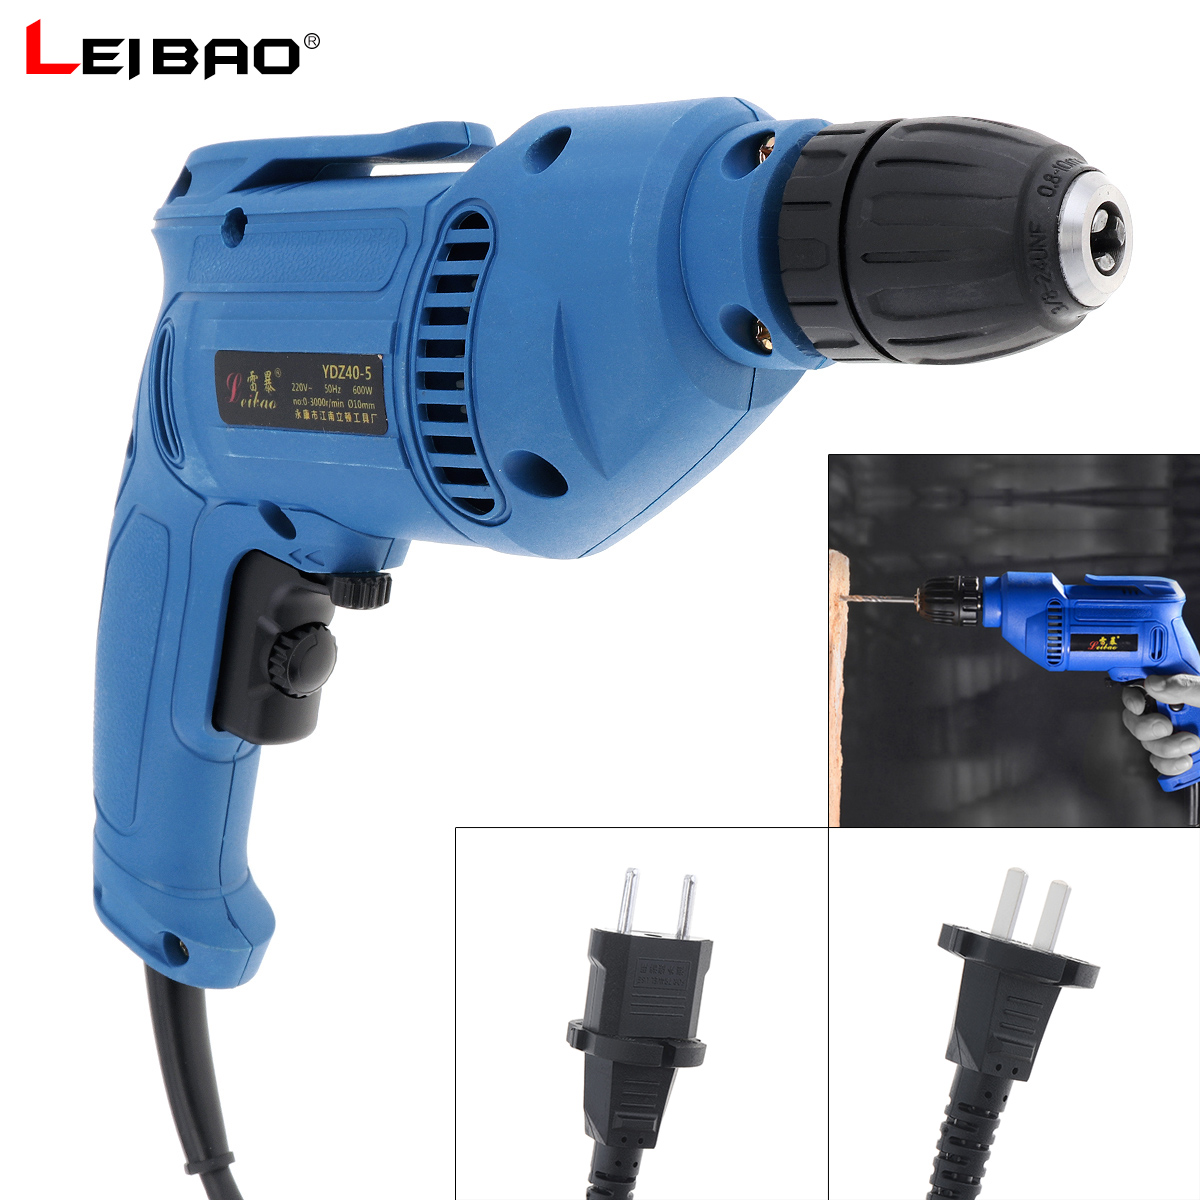 220V 600W Multifunction Handheld Impact Electric Drill with Positive Reversal Adjustable Speed Switch and 10mm Drill Chuck-in Electric Drills from Tools on AliExpress - 11.11_Double 11_Singles' Day 1